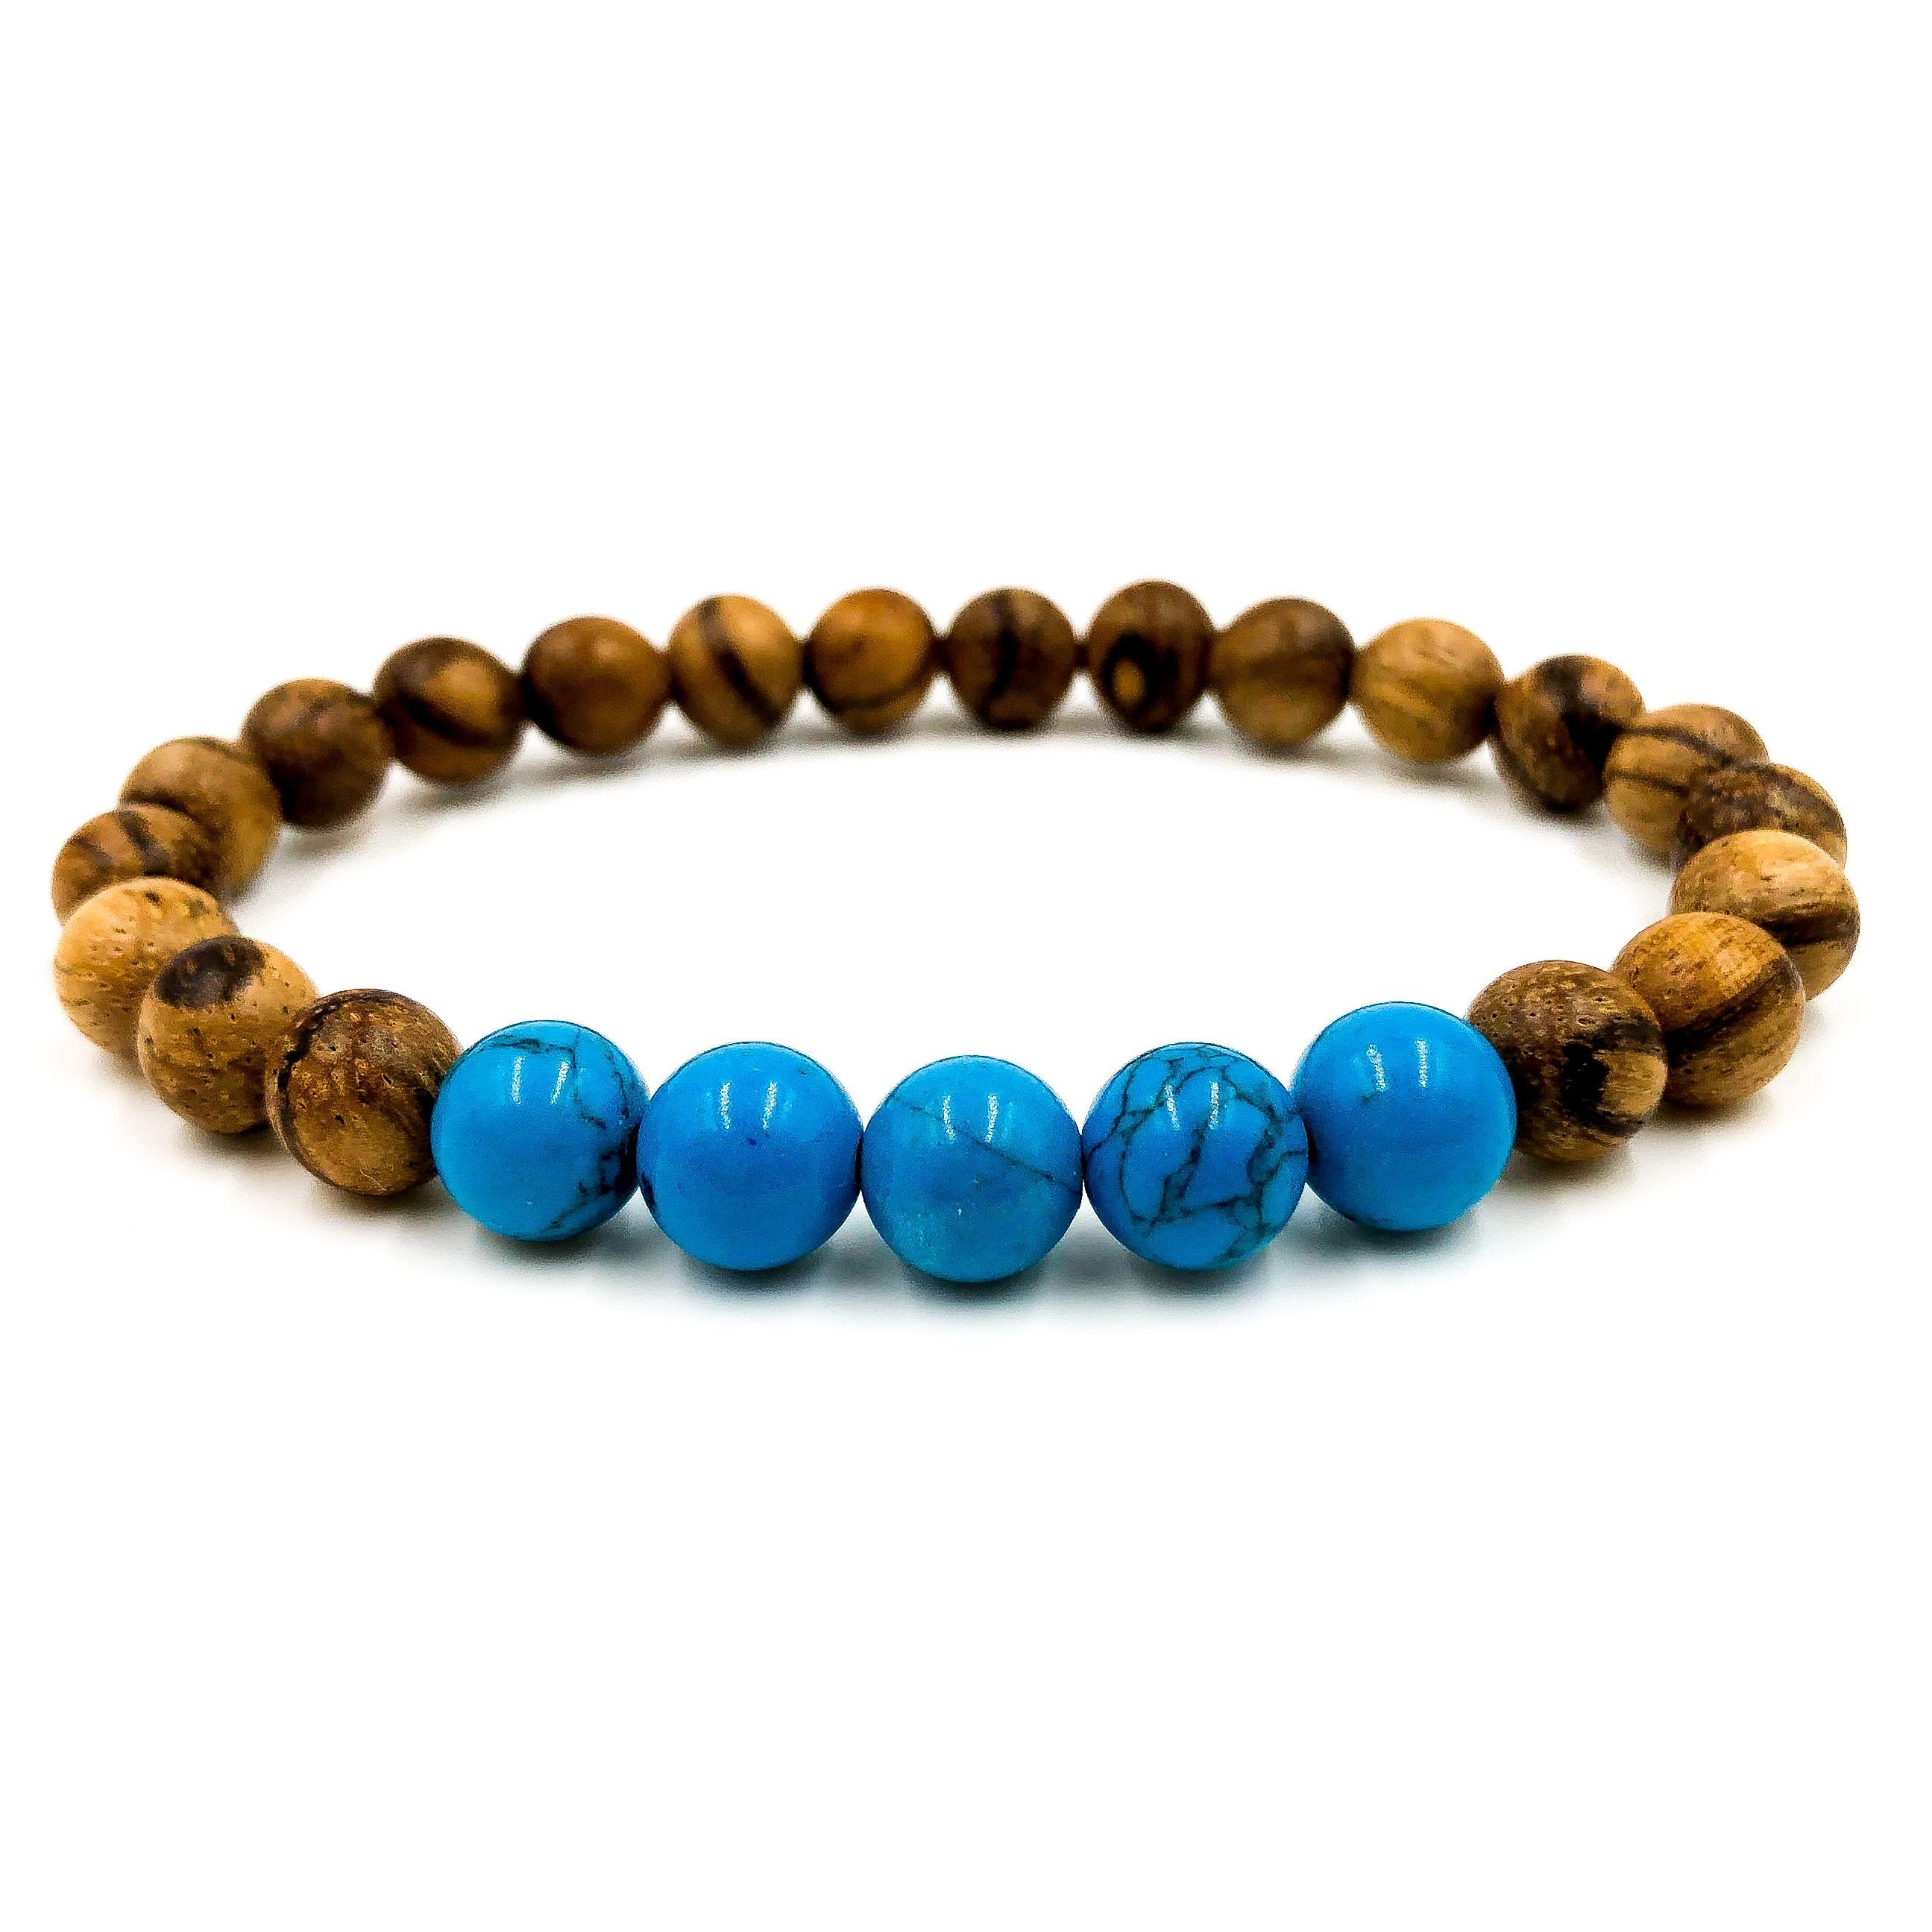 Grove | Turquoise Howlite & Light Sandalwood S/m Jewelry Accessories - Bracelets Bangles